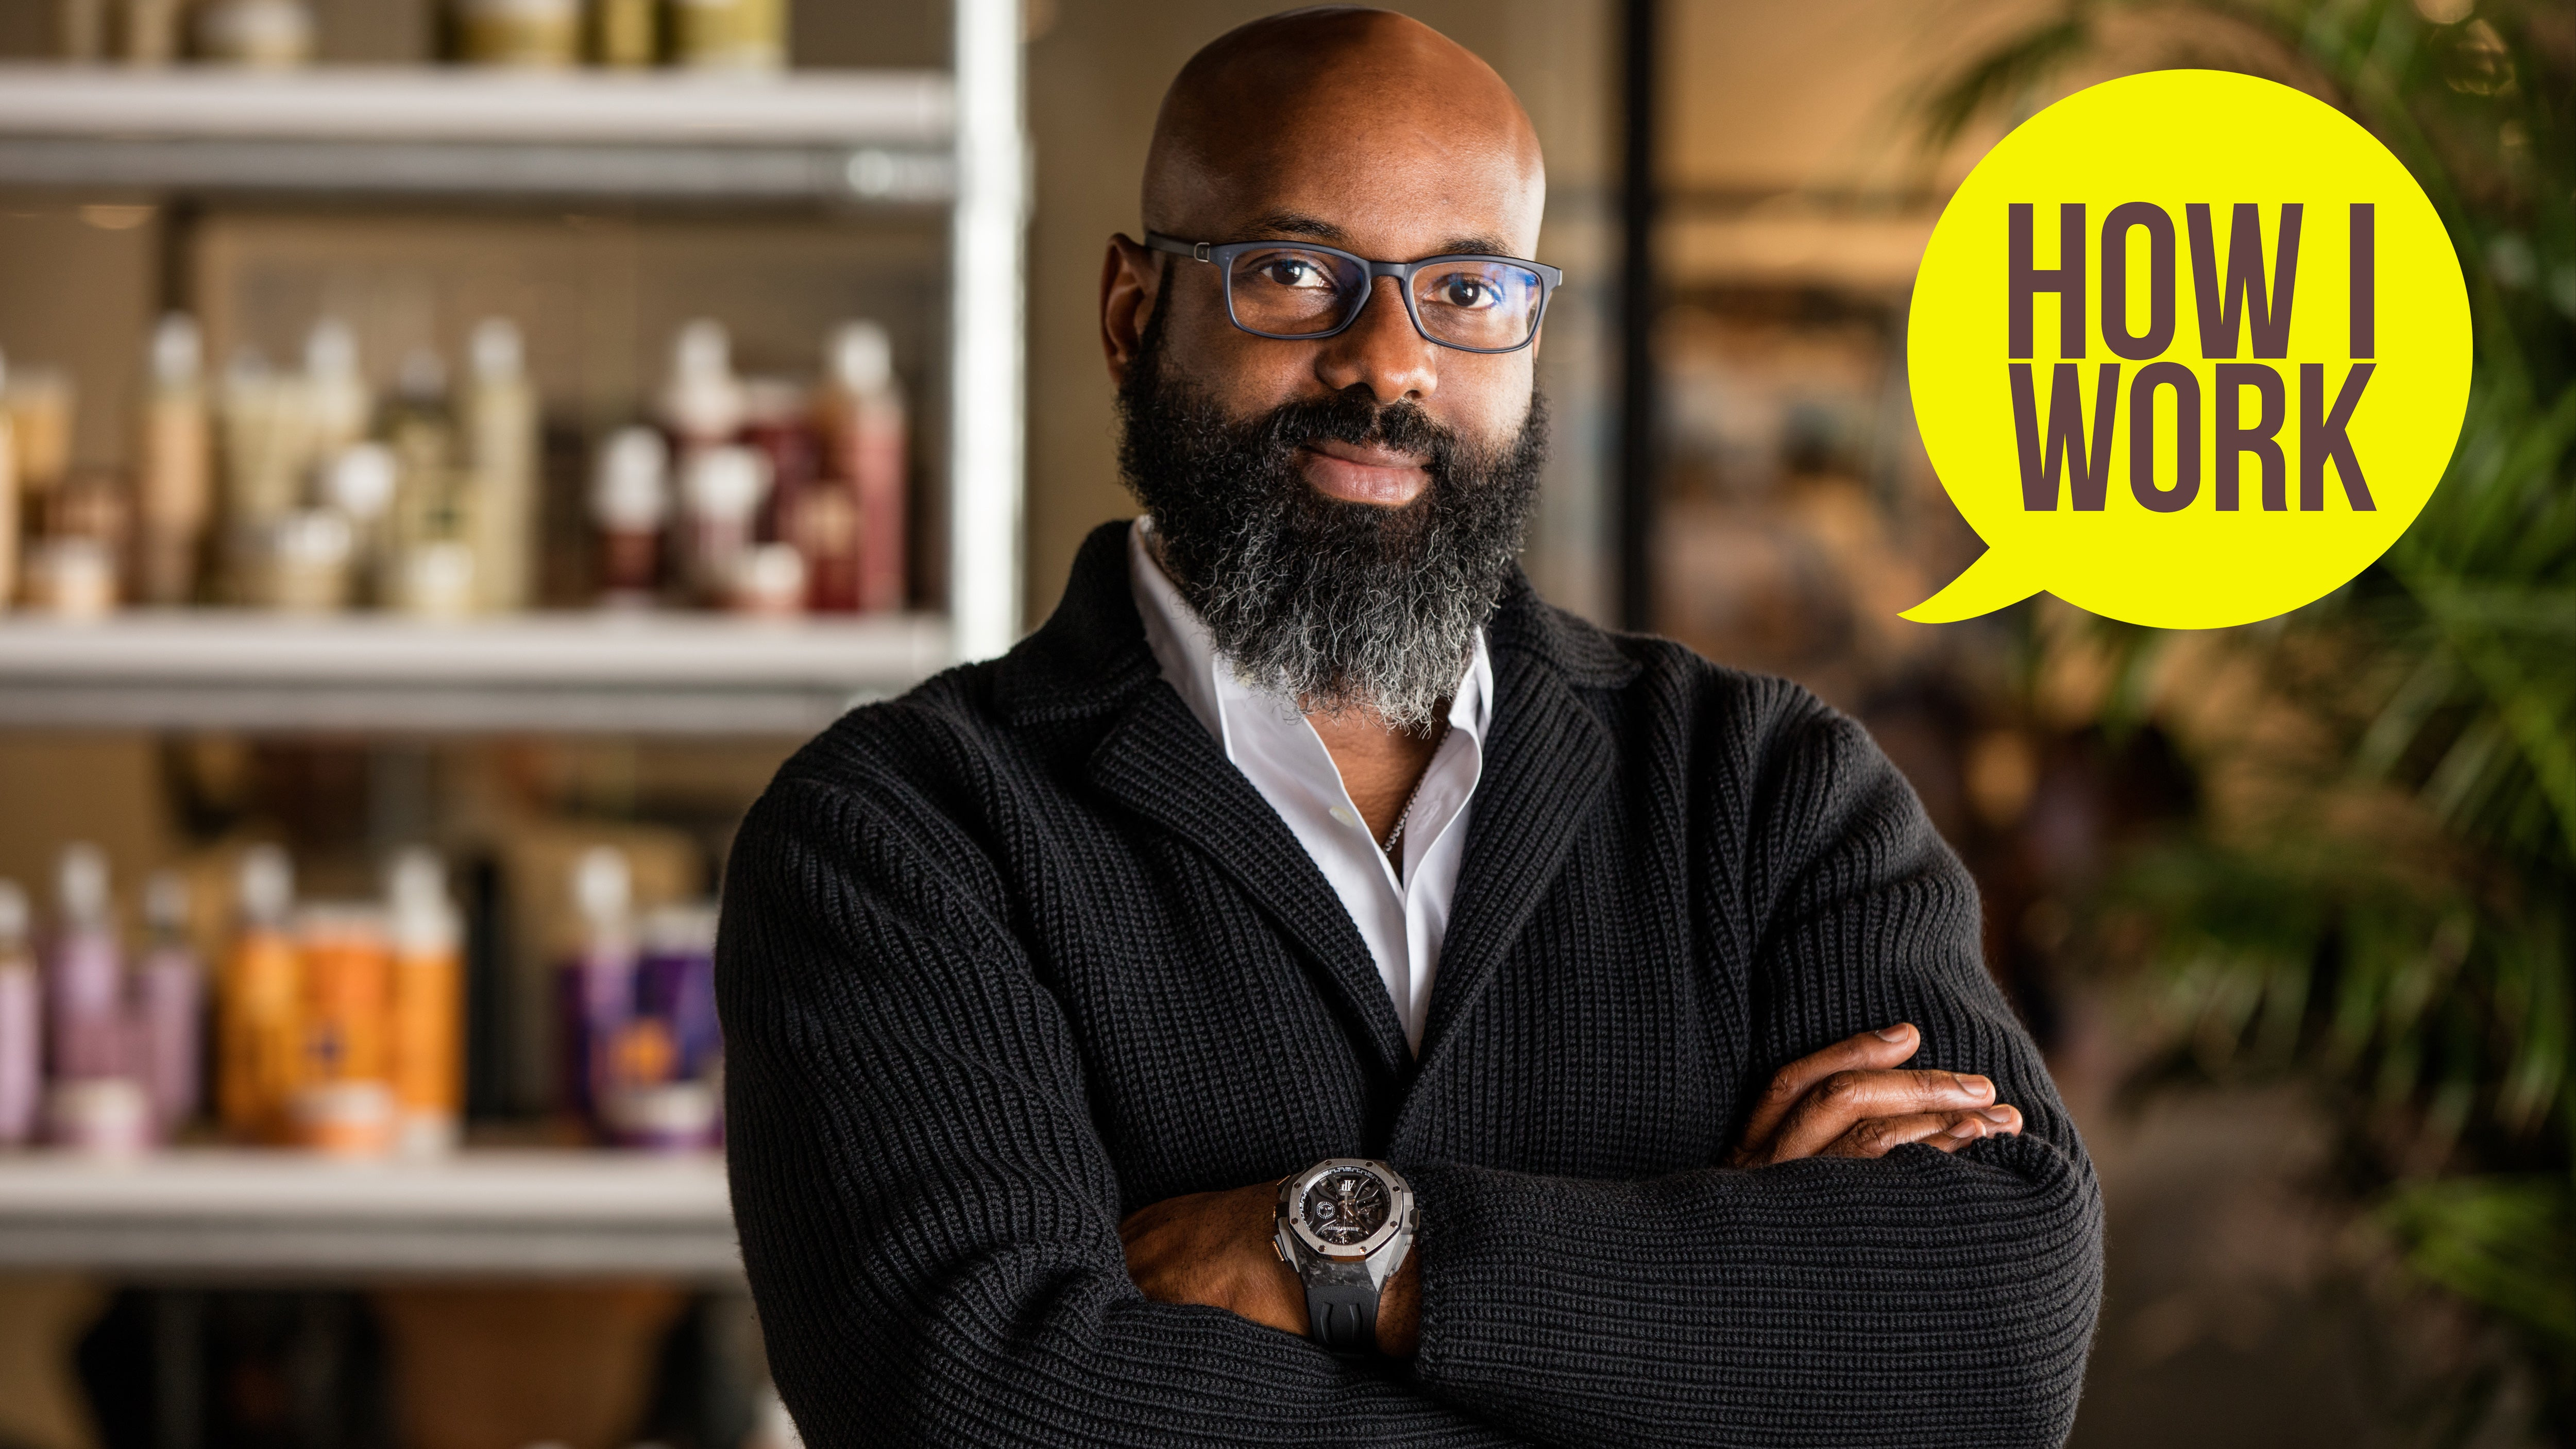 I'm Richelieu Dennis, Owner Of Essence And Sundial Brands, And This Is How I Work